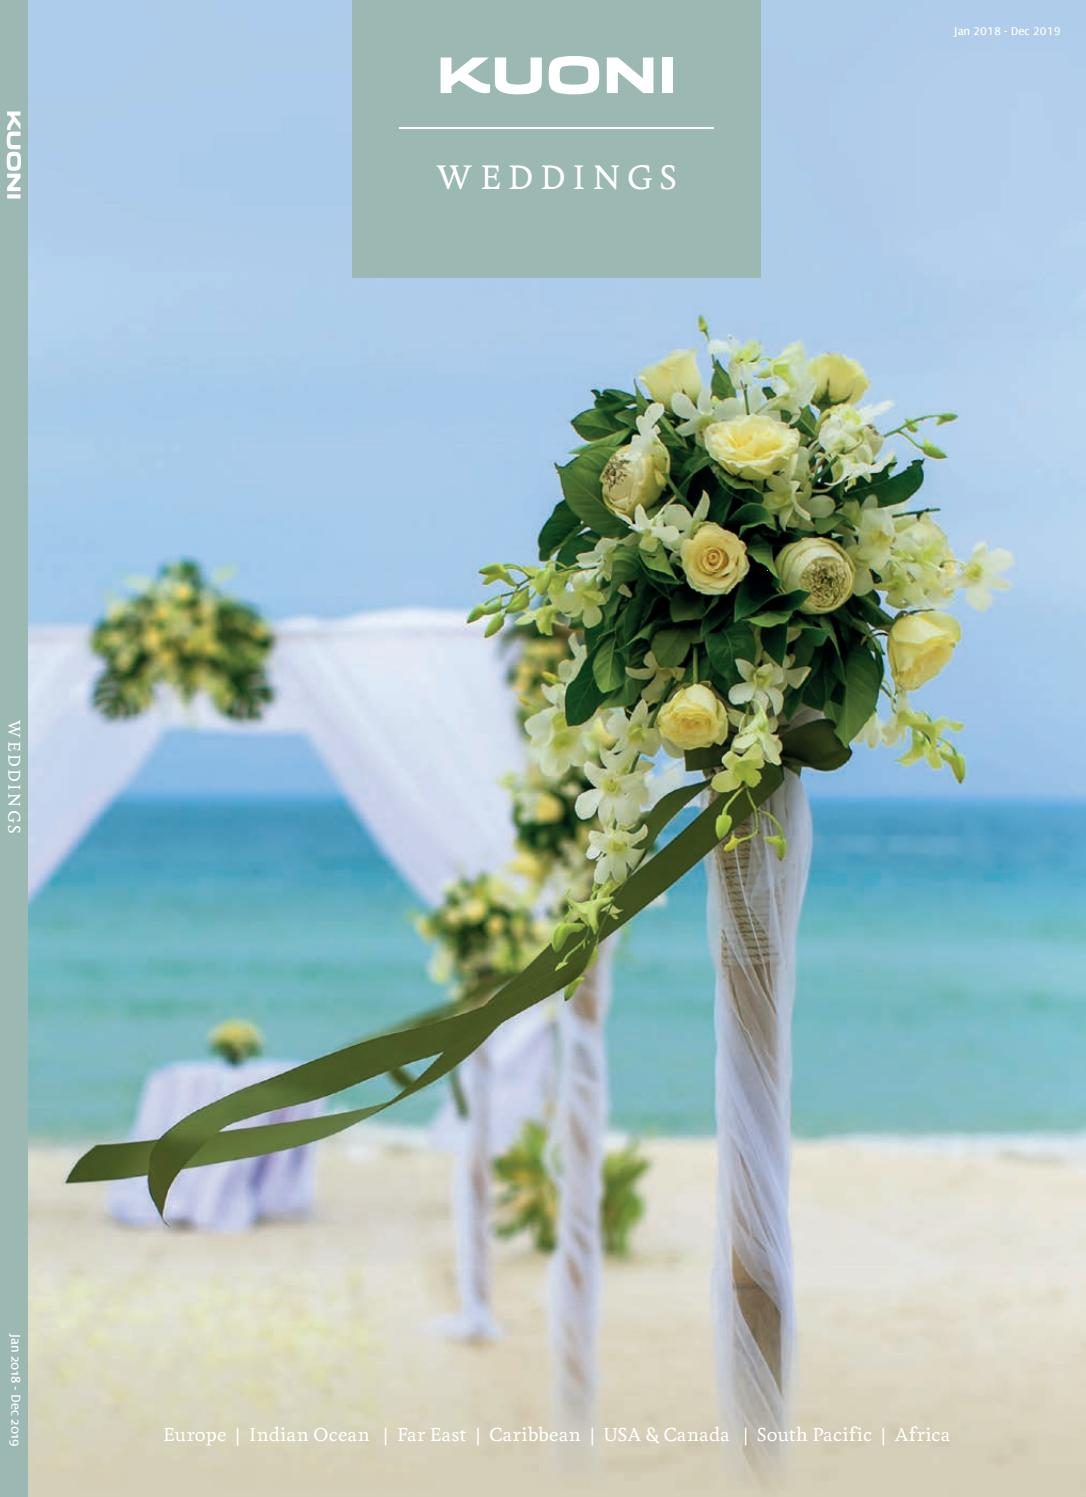 Kuoni Weddings By Travel Designers Issuu